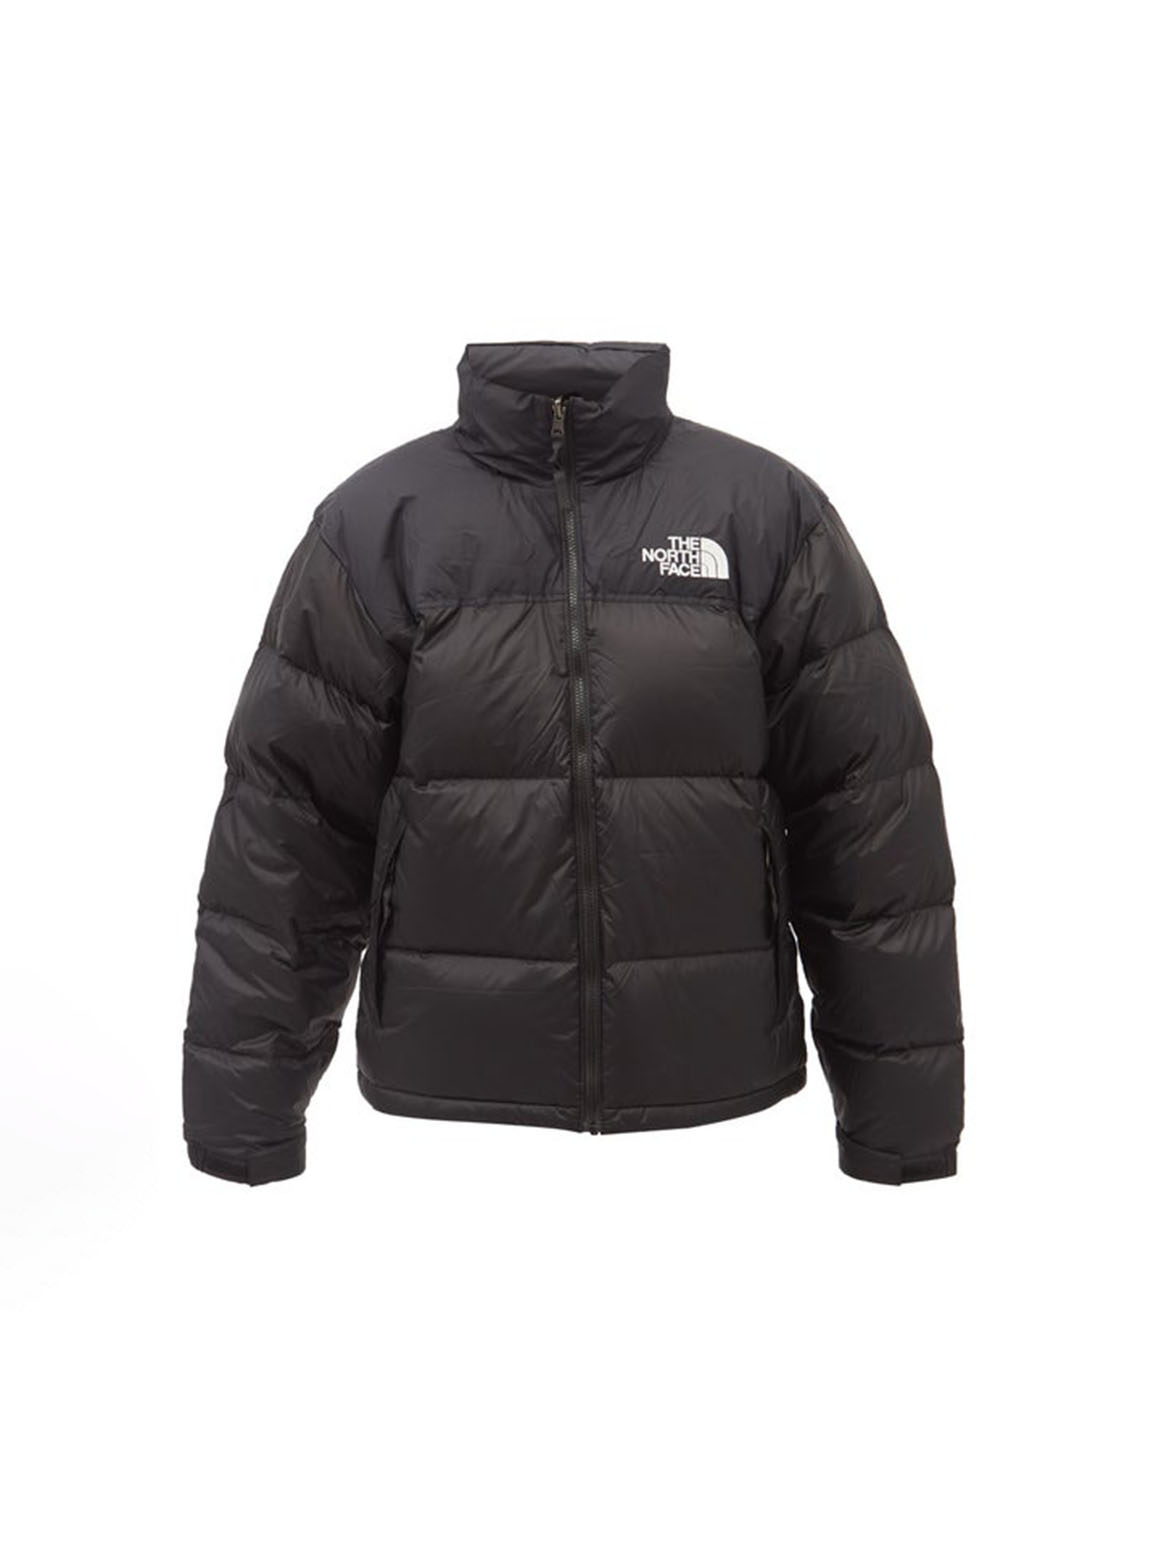 1996 Nuptse quilted down jacket